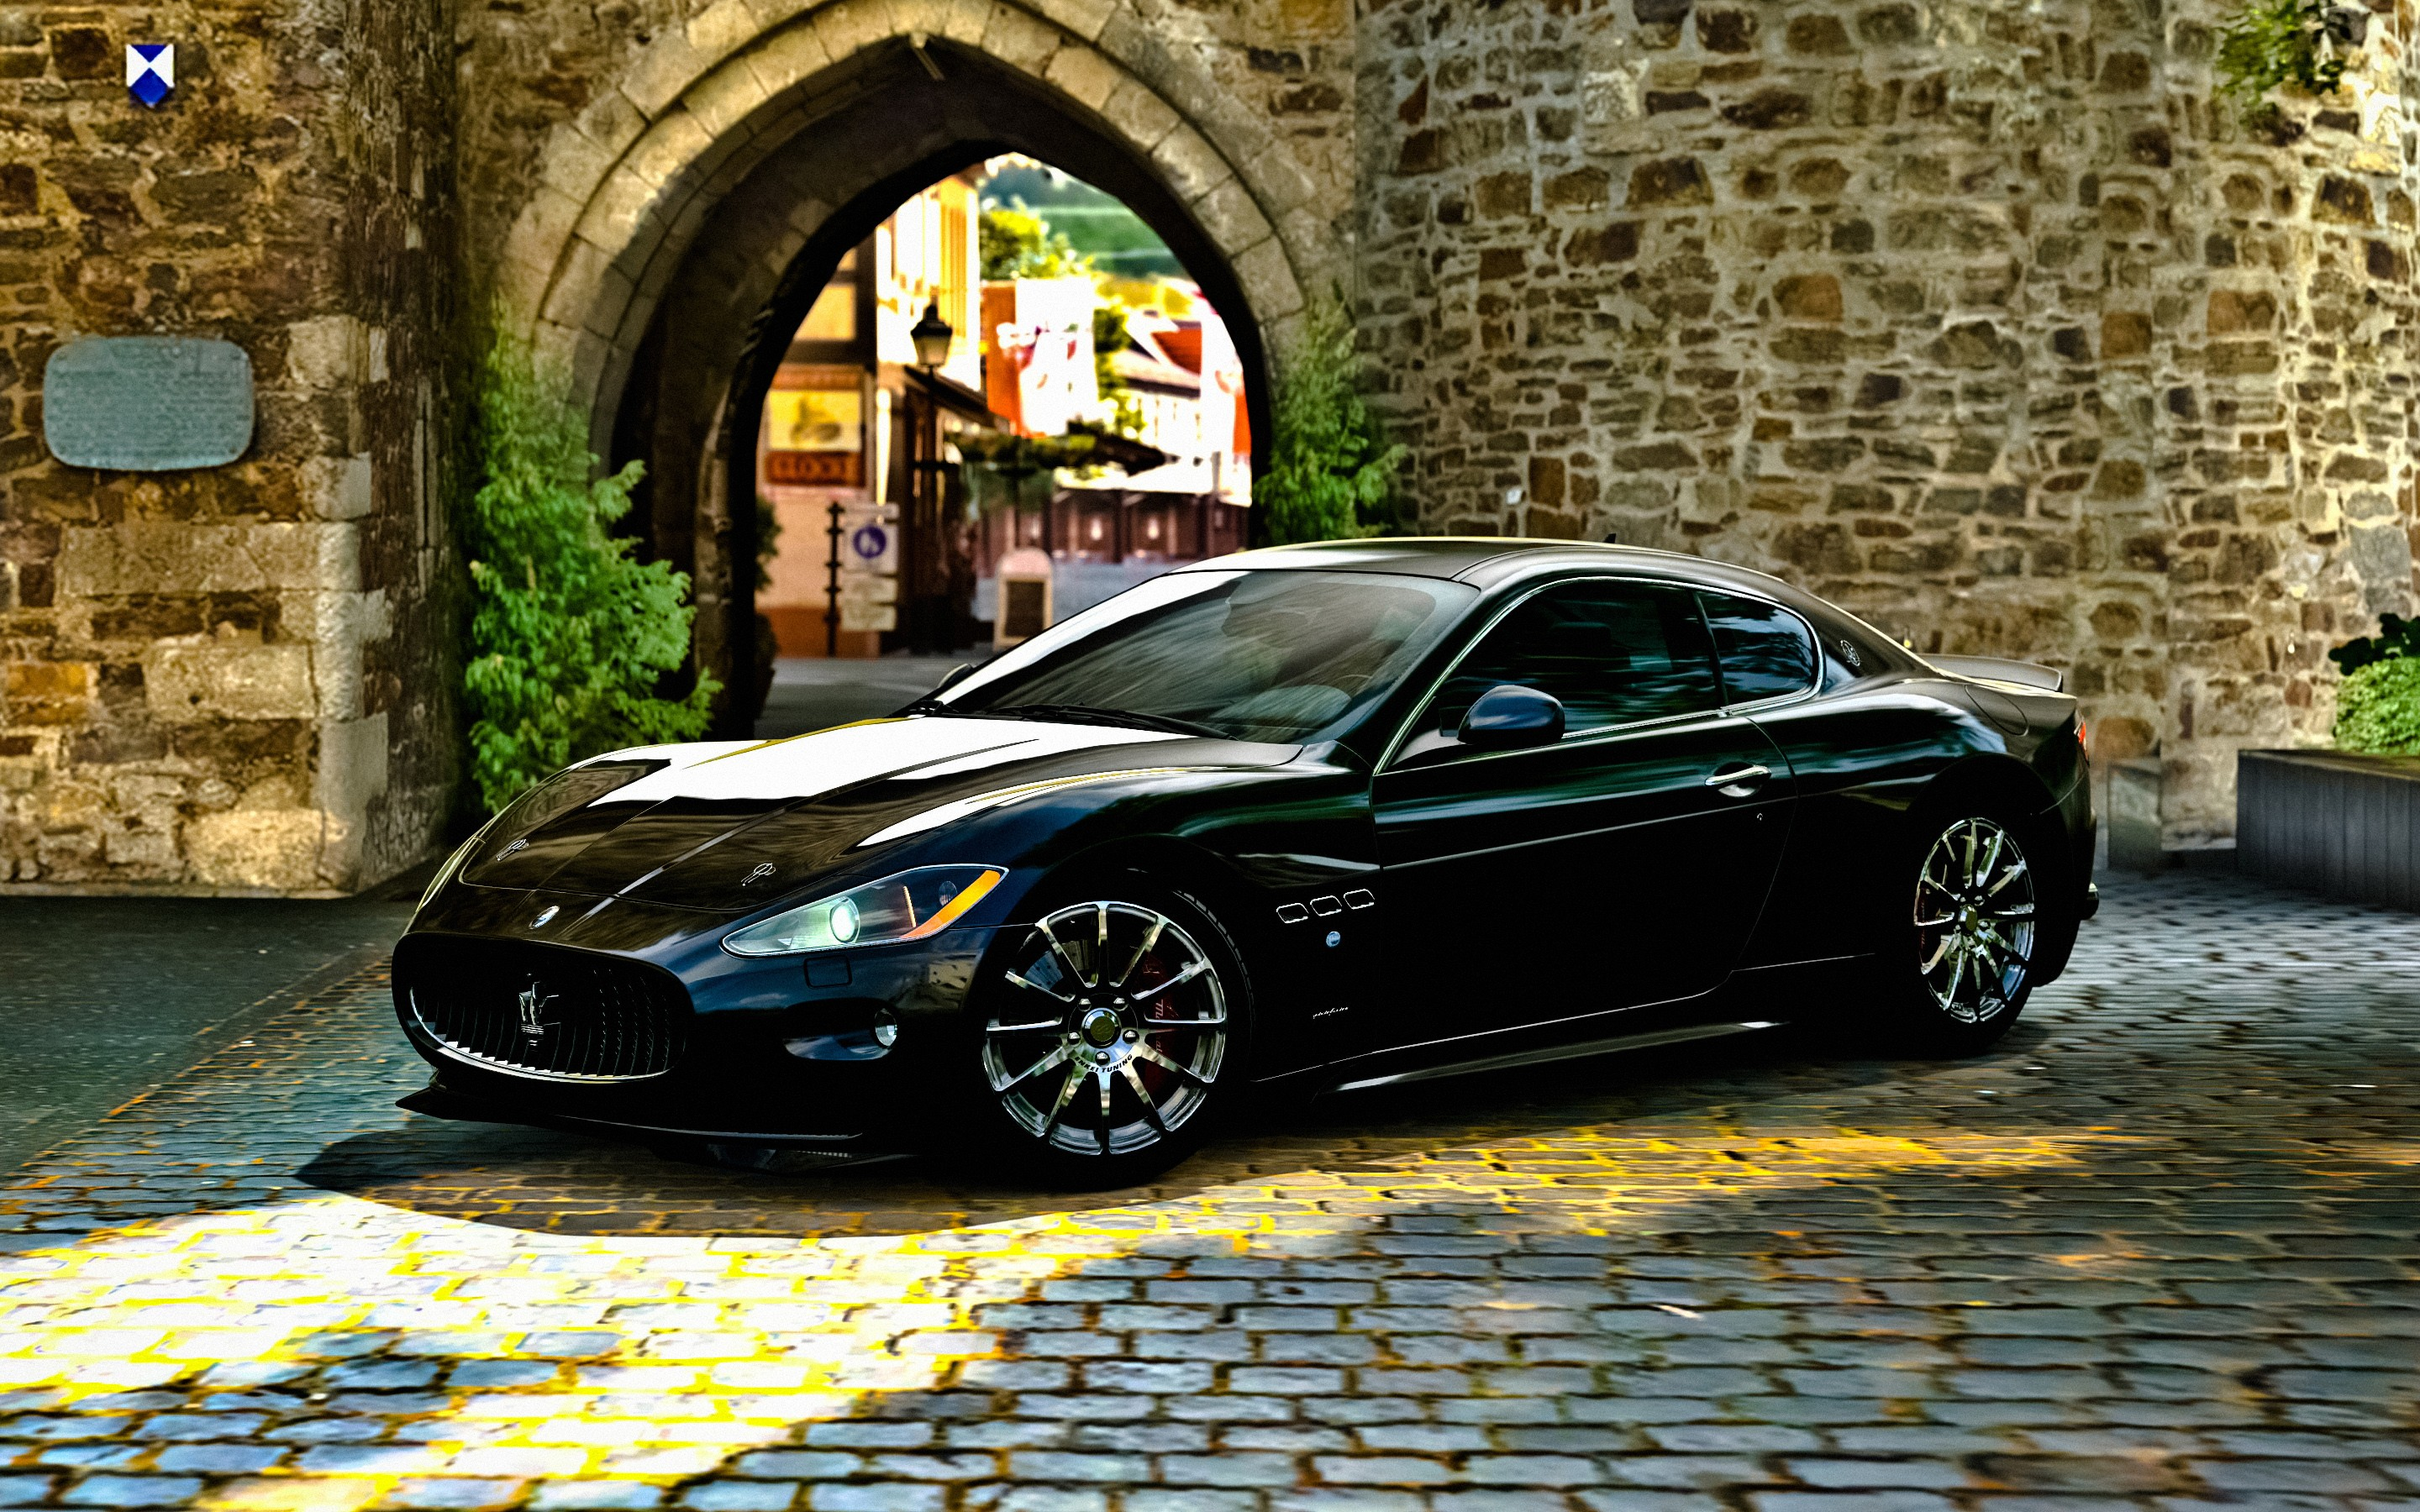 maserati granturismo wallpaper hd car wallpapers id 3941. Black Bedroom Furniture Sets. Home Design Ideas